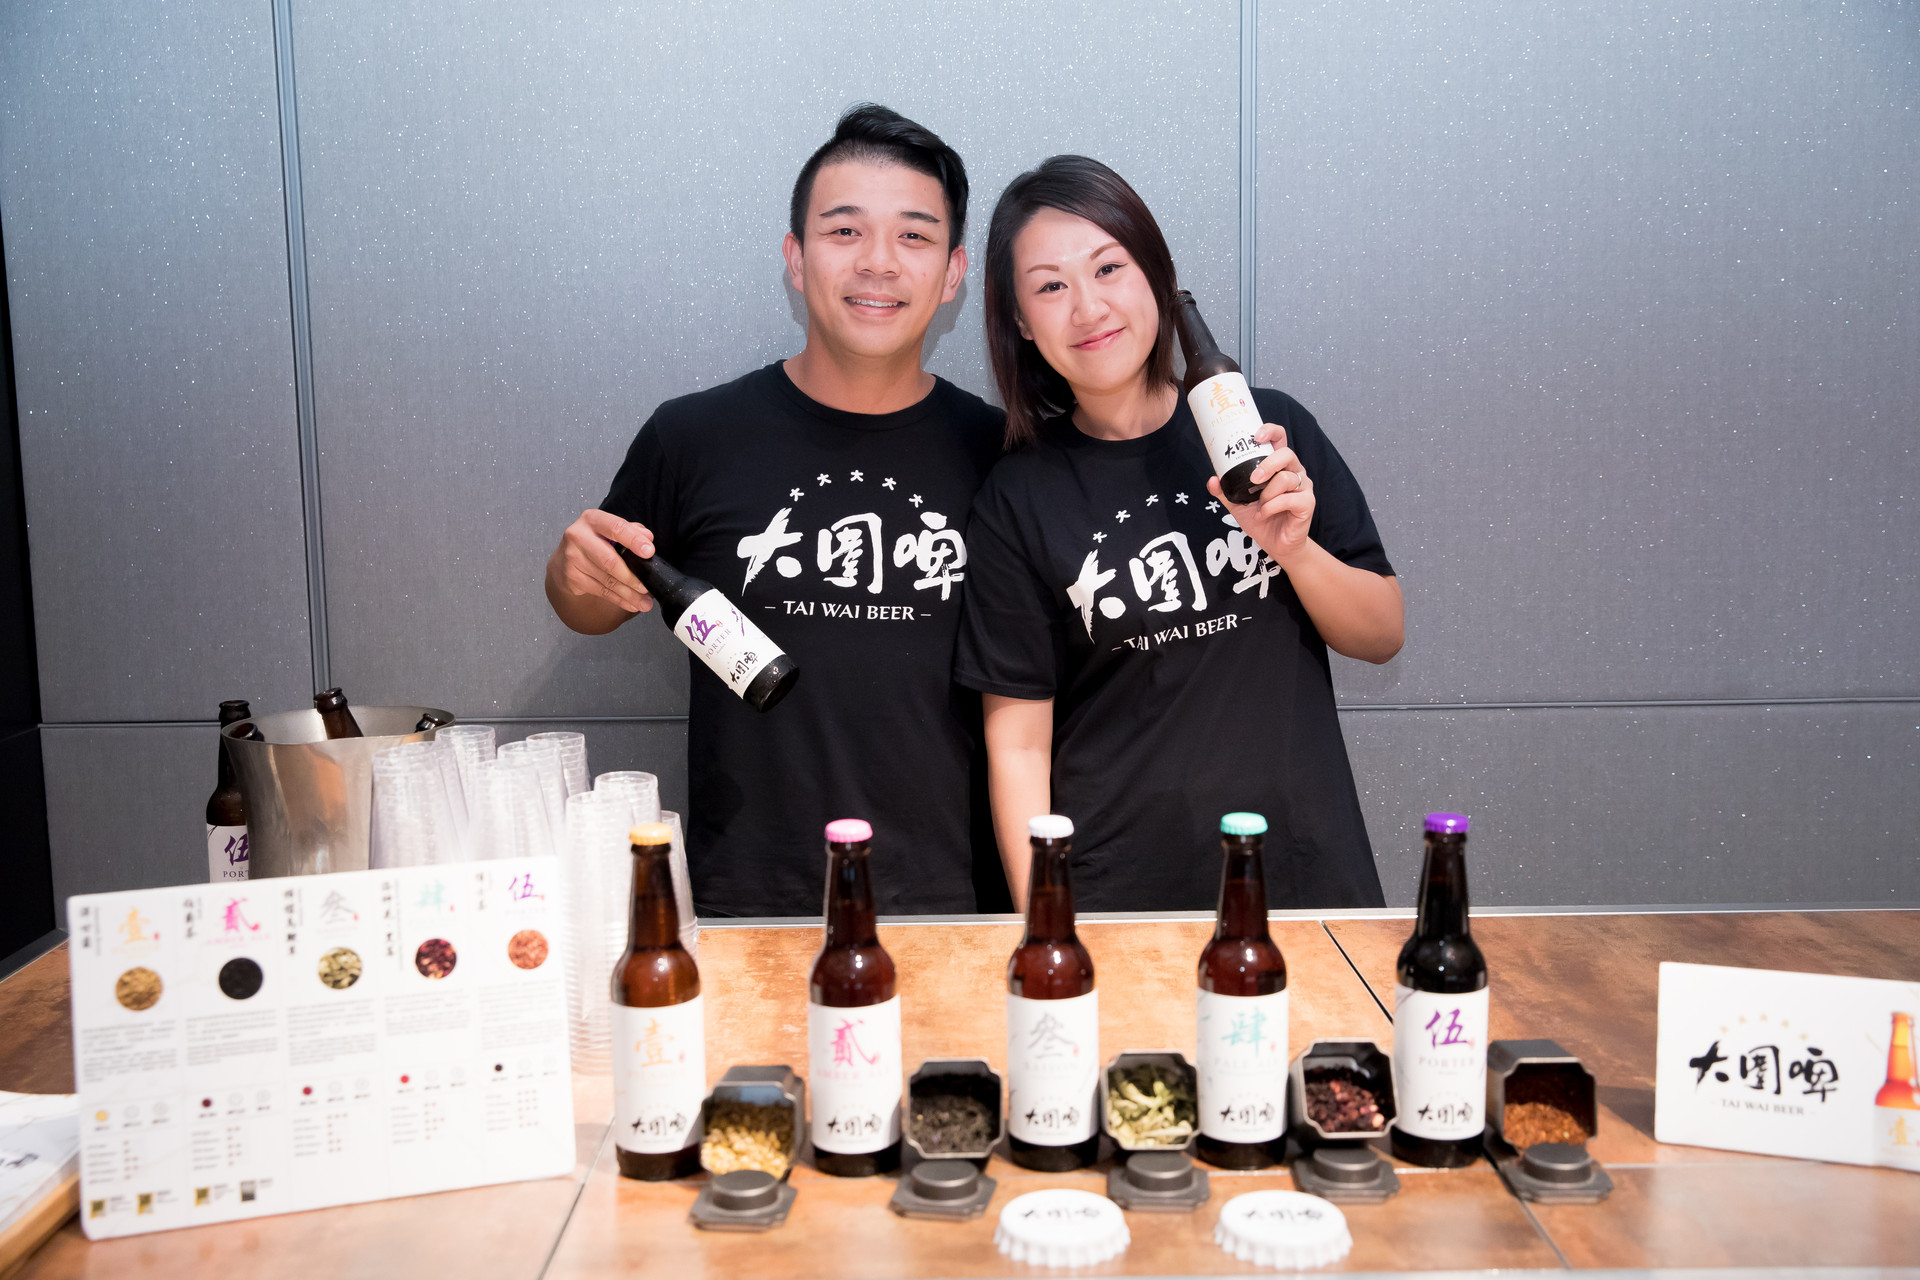 Beer infused with tea product shot in event